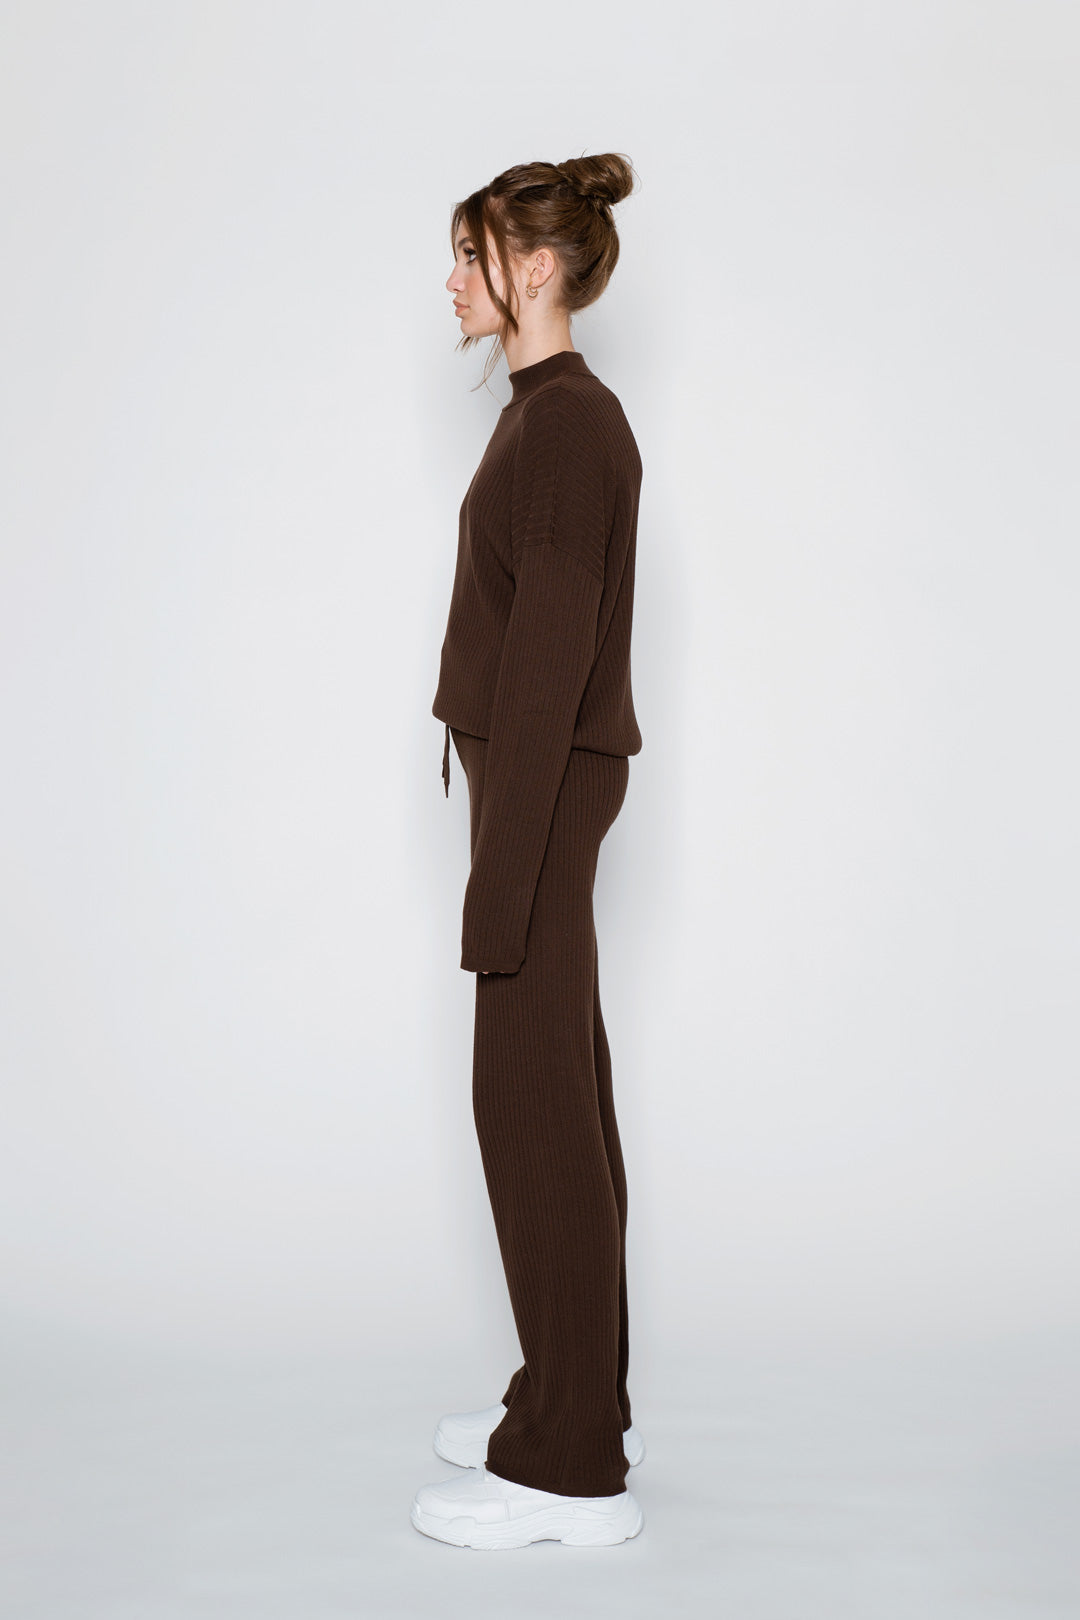 RIBBED PANT - brown